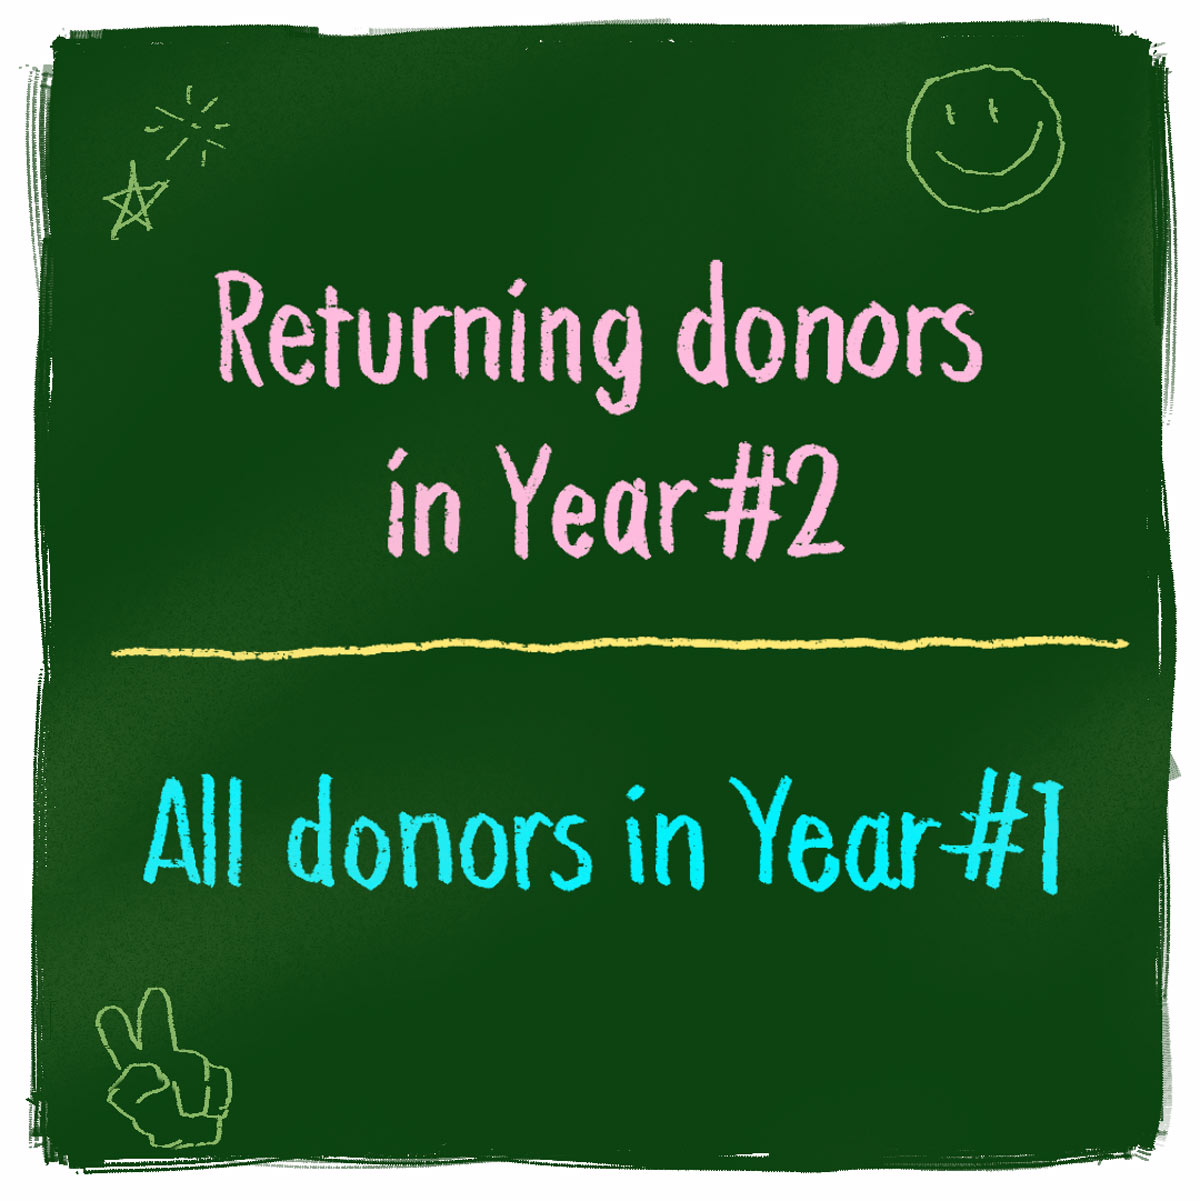 Returning donors in year 2 divided by all donors in year 1